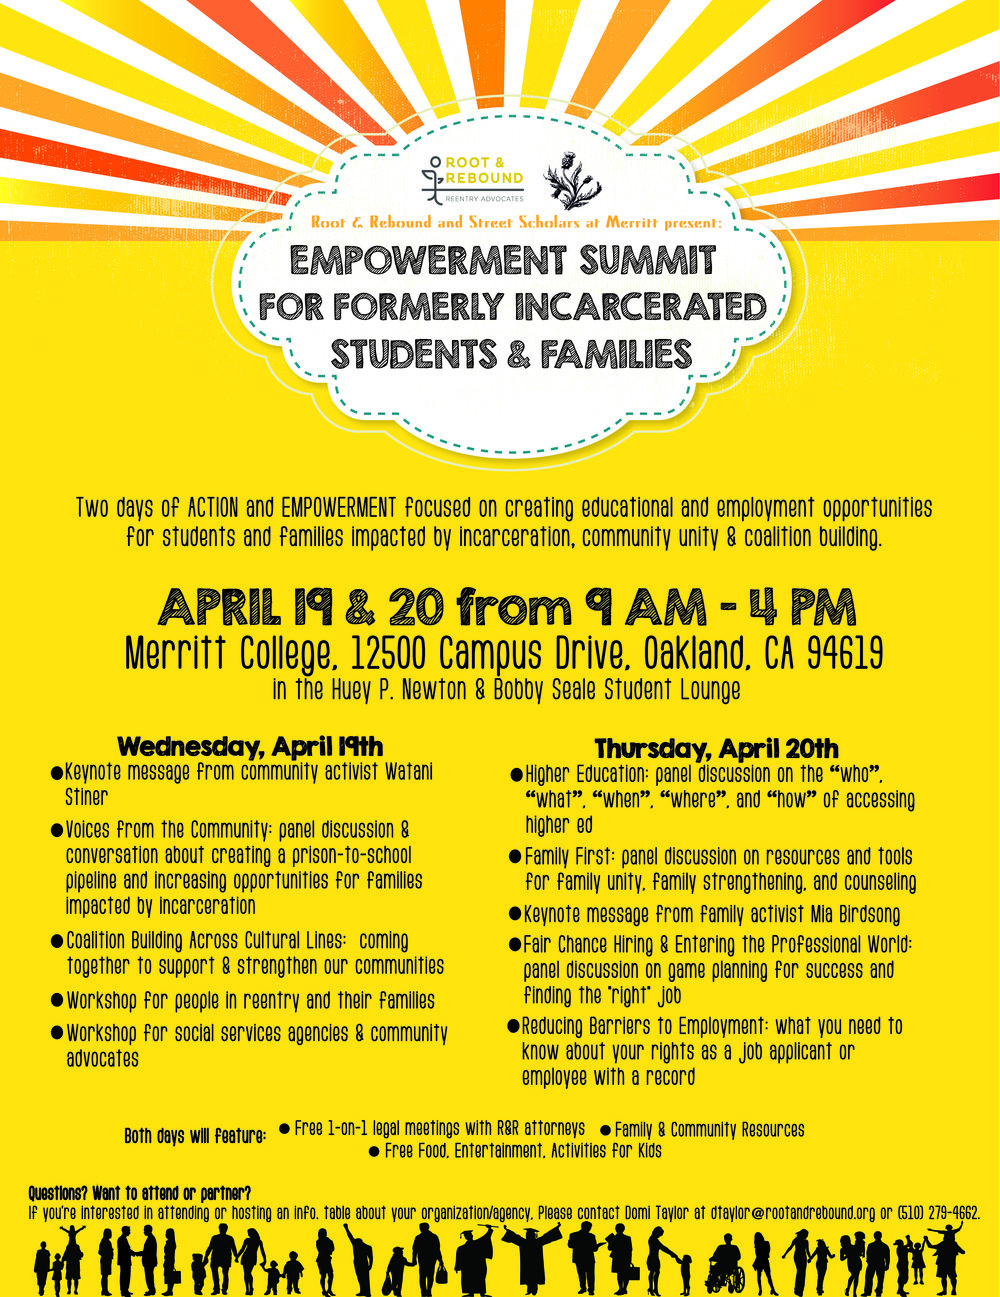 Final Empowerment Summit Flyer.jpg